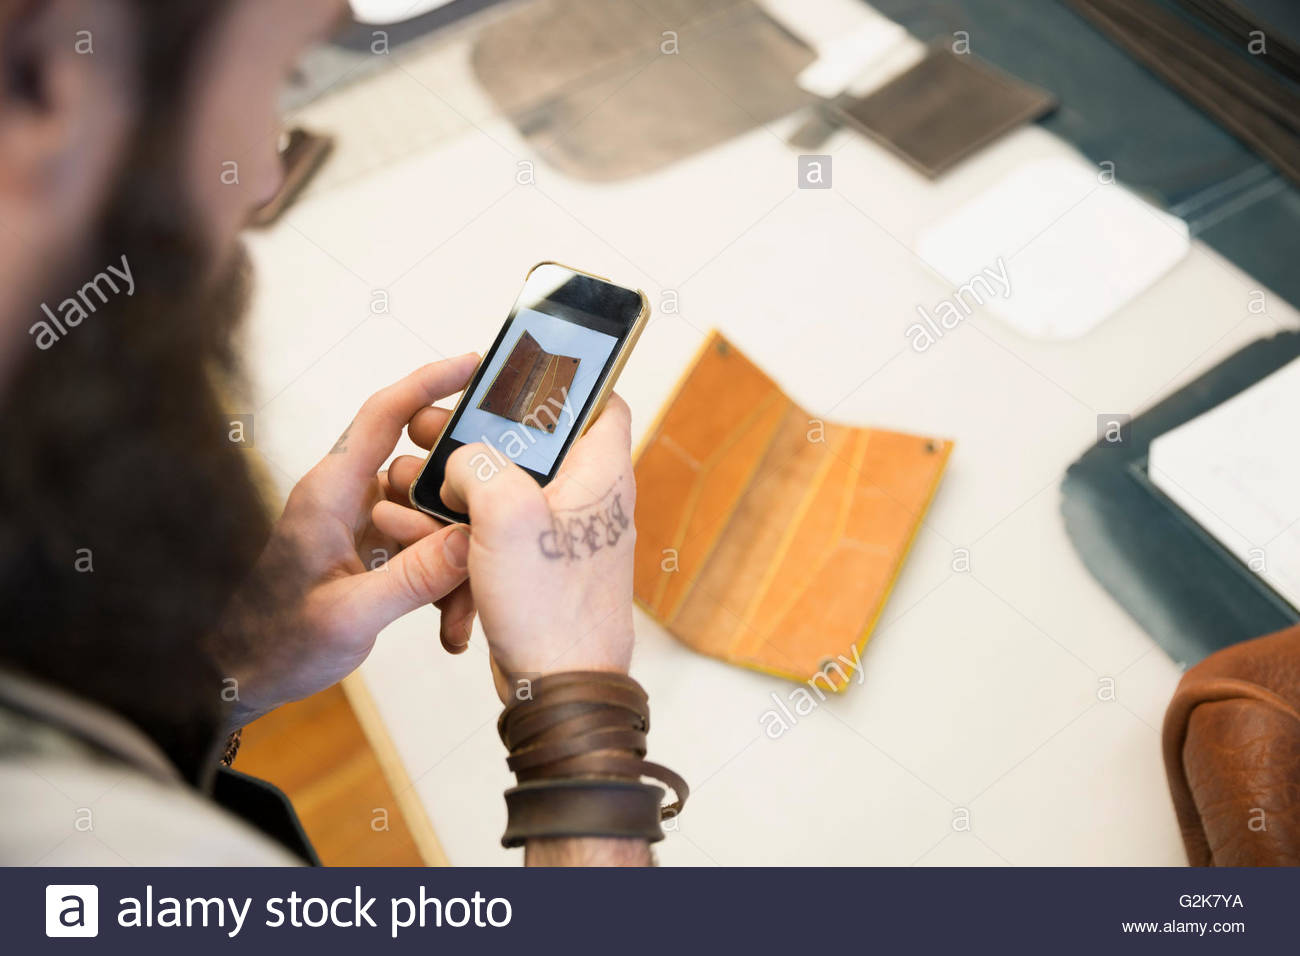 Leather worker photographing leather with camera phone - Stock Image